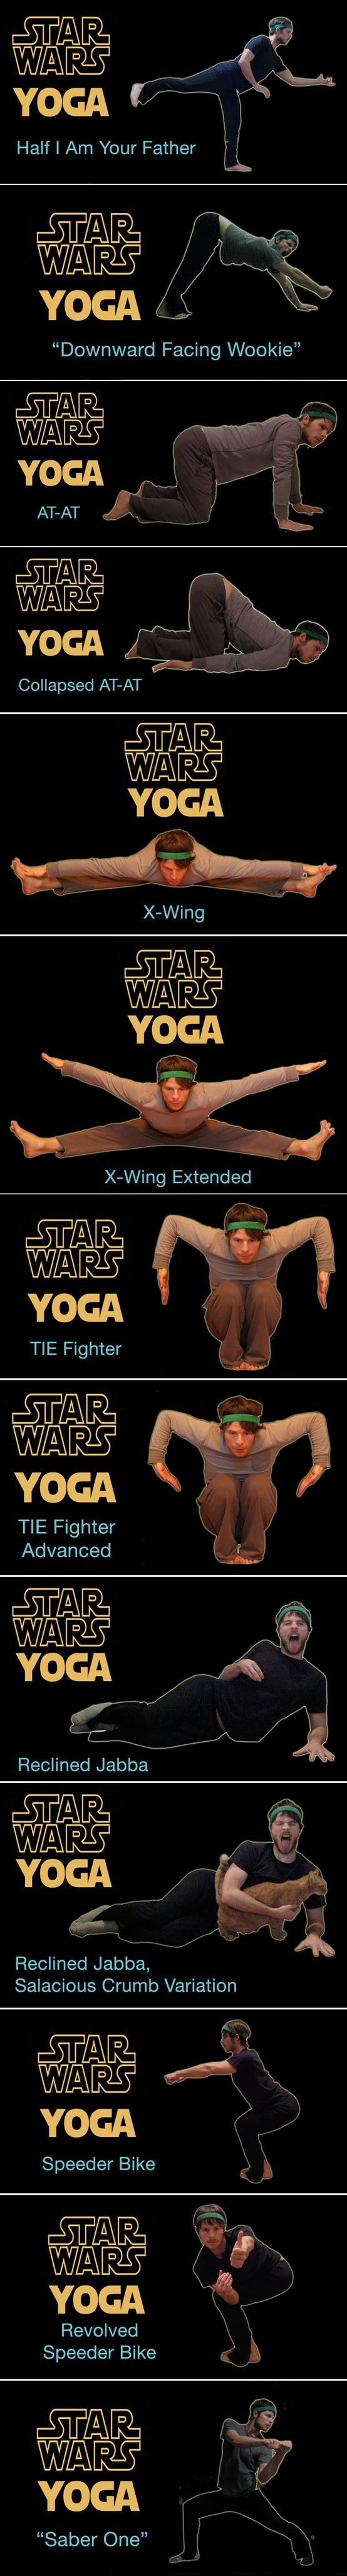 star wars yoga ahahahahaha. I didn't know which board to post it on lol